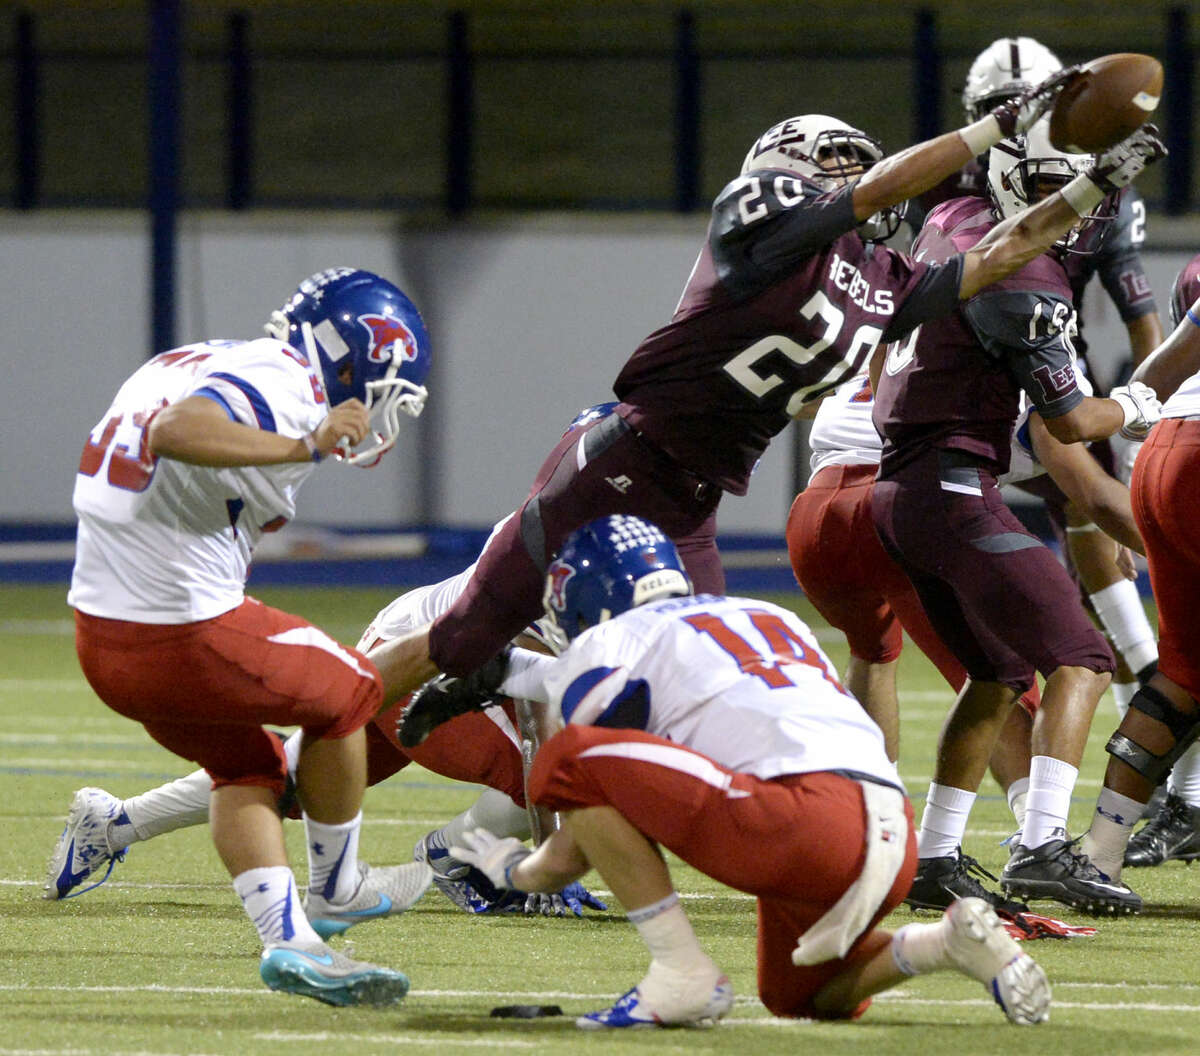 Lee High defensive back Garrett Chalker (20) blocks a kick from Abilene Cooper's Pedro Lira (39) and Stetson Hodges (14) and went on to recover the ball for a turnover Friday, Sept. 25, 2015, at Grande Communications Stadium. James Durbin/Reporter-Telegram